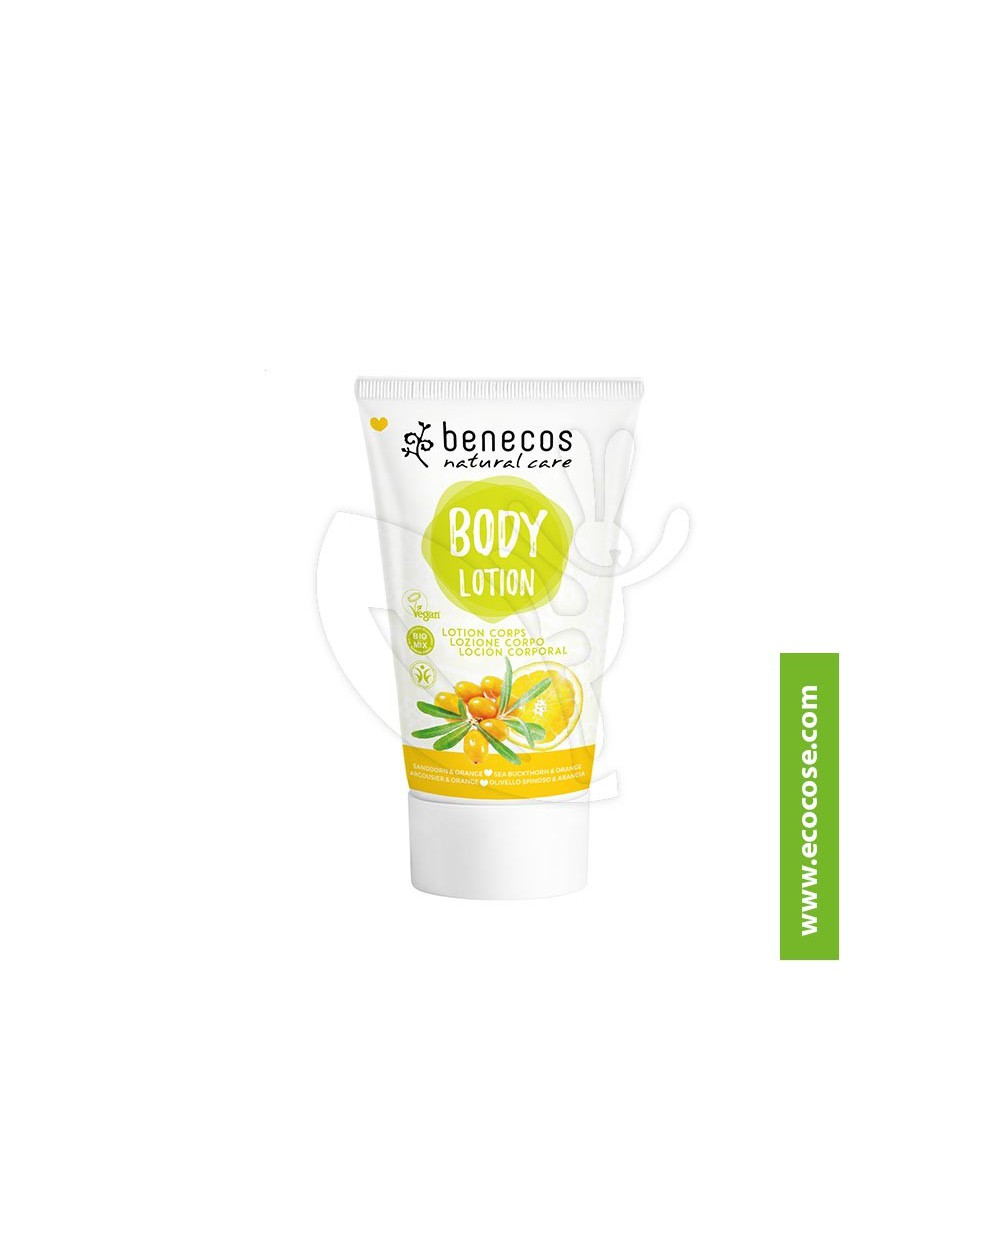 Benecos - Natural Care - Body Lotion - Olivello spinoso e Arancia